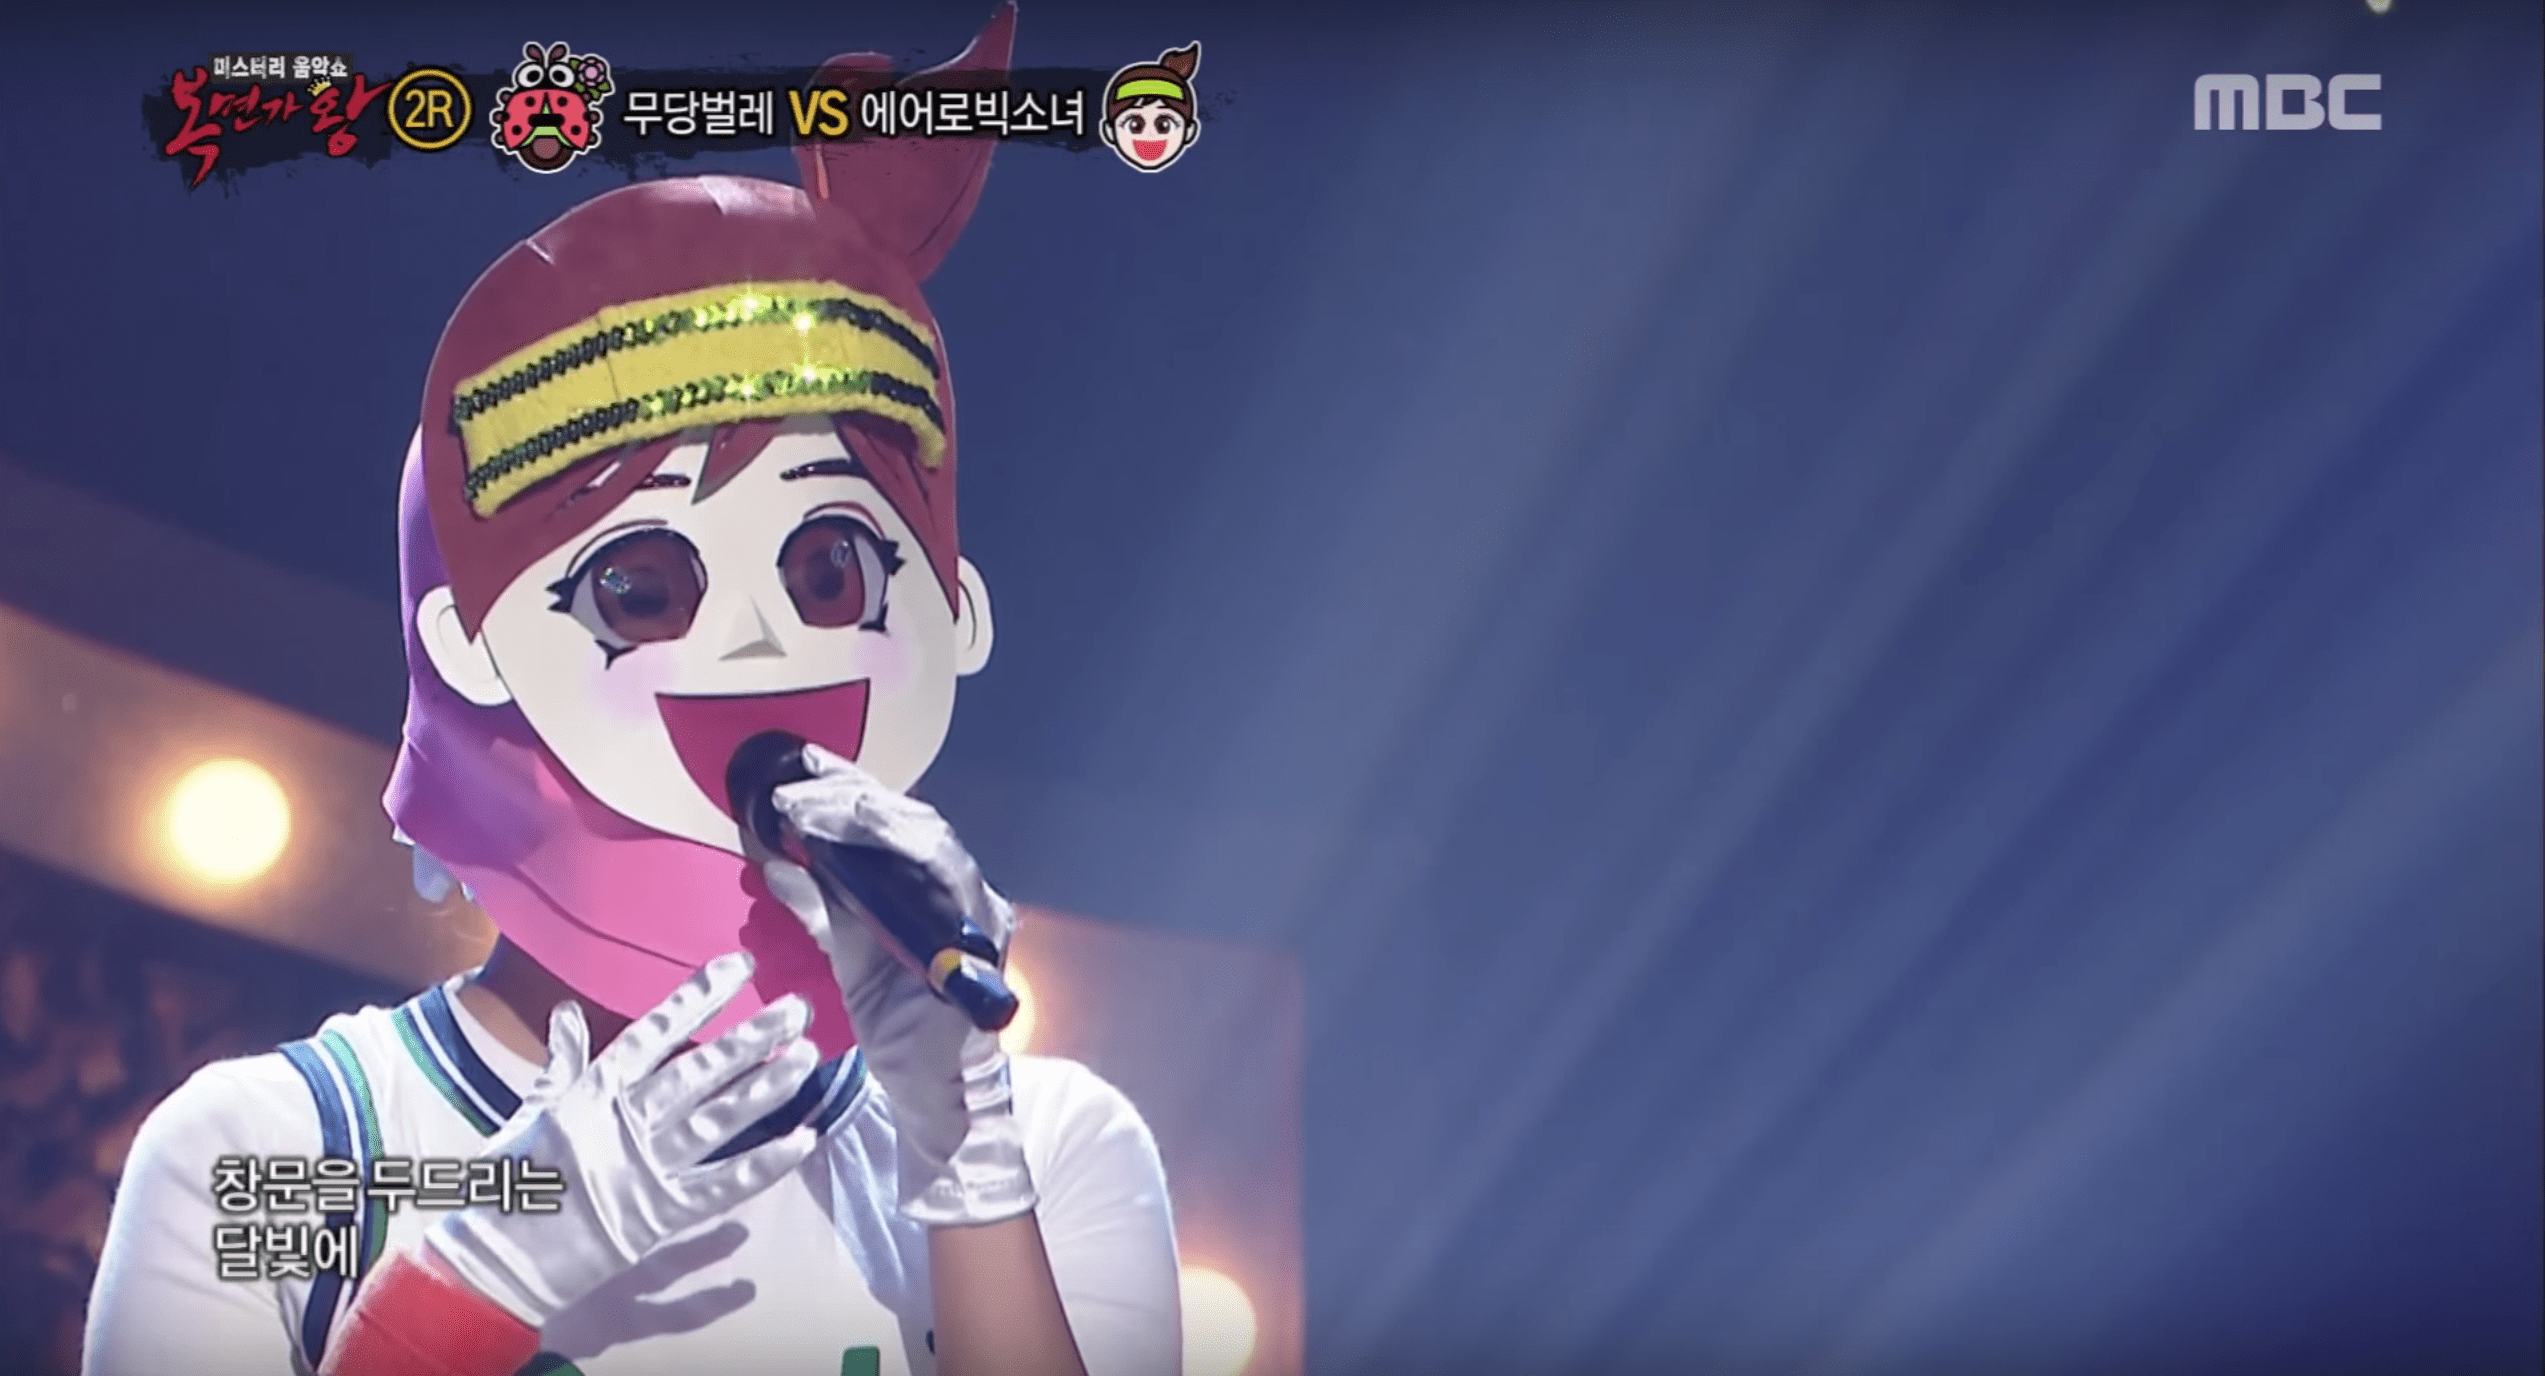 Member Of Girl Group Known For Their Vocals Revealed On King Of Masked Singer